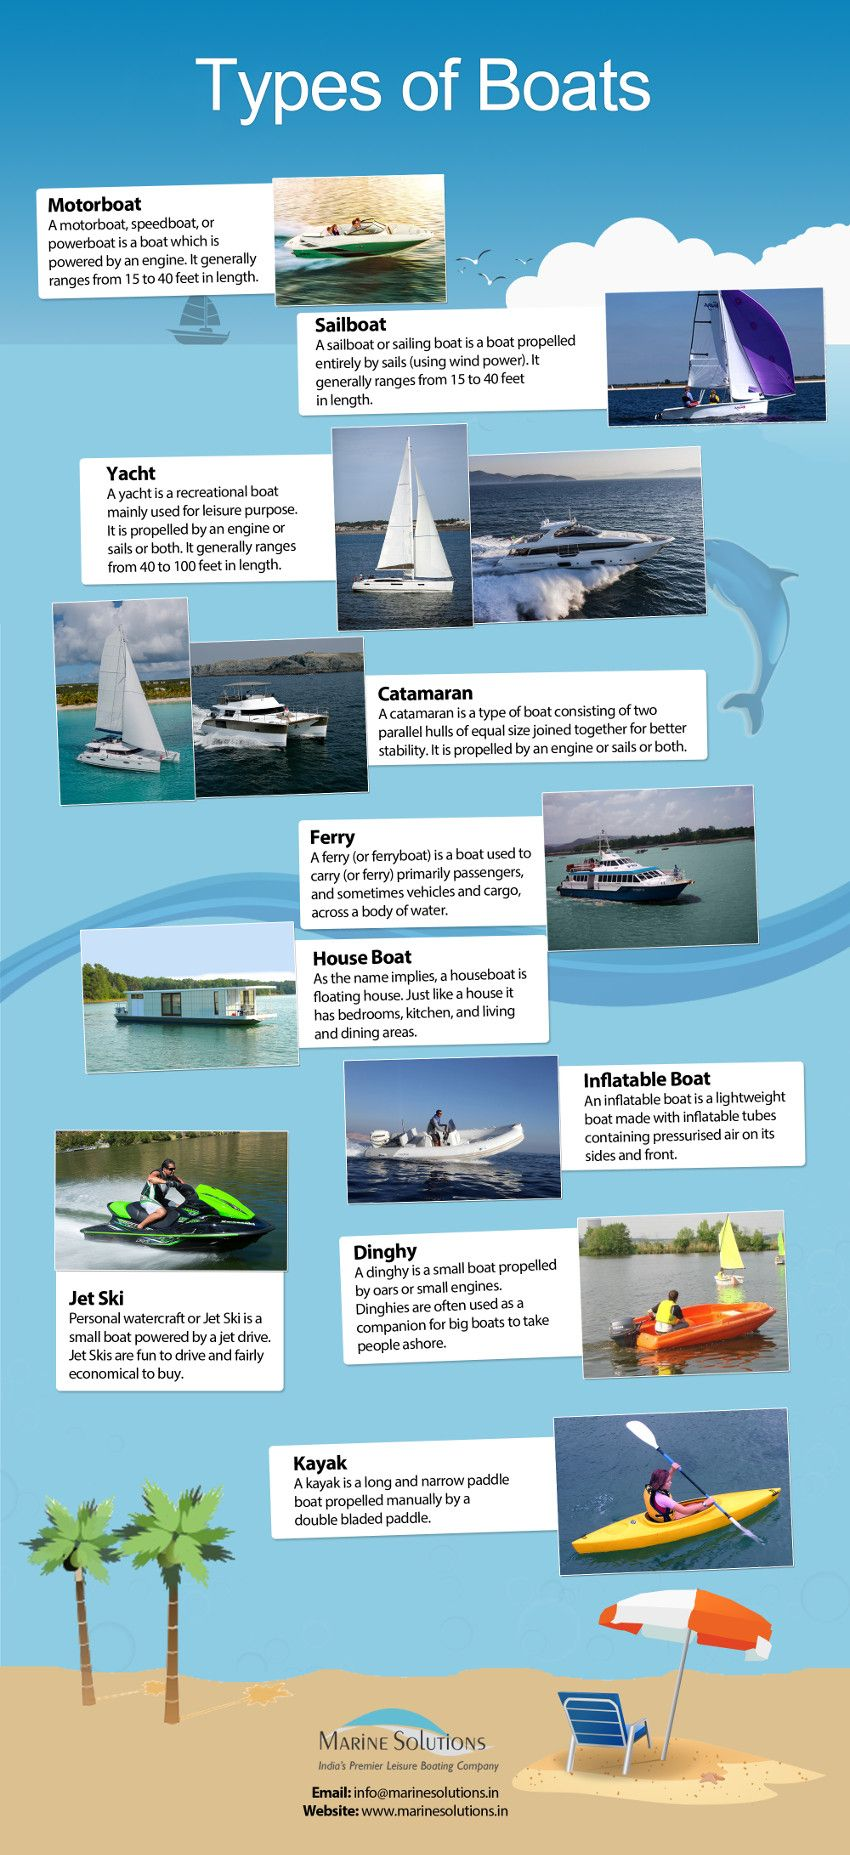 Types Of Boats Infographic With Images Boat Plans Boat